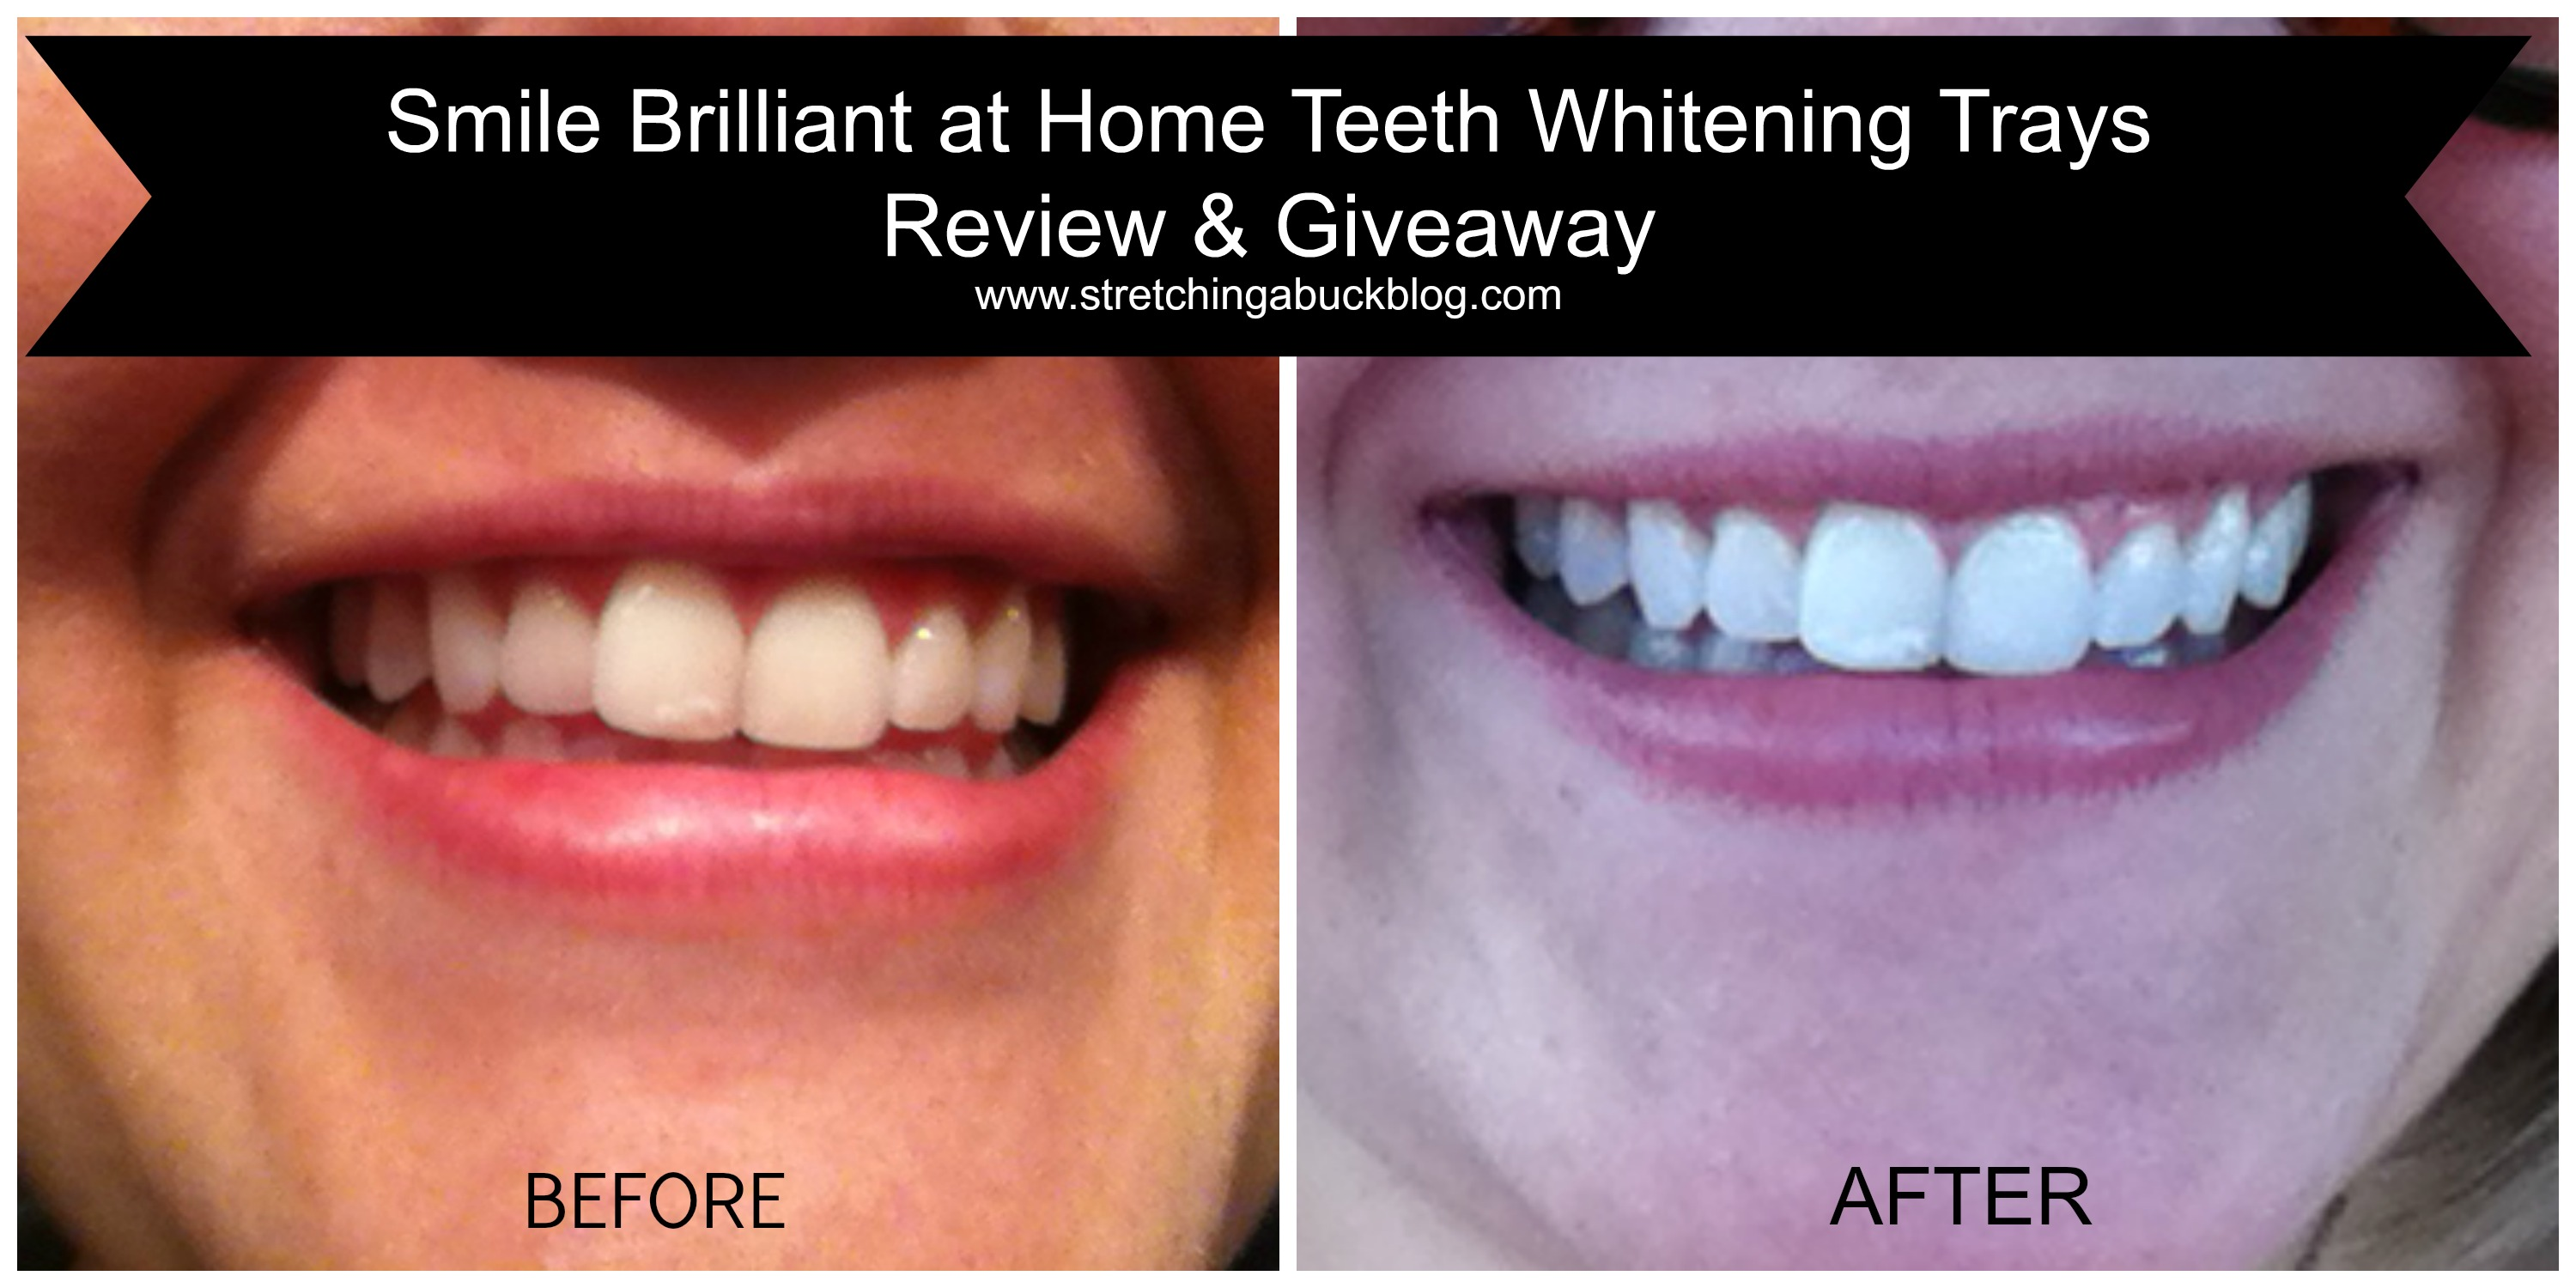 Smile Brilliant At Home Teeth Whitening Trays Review